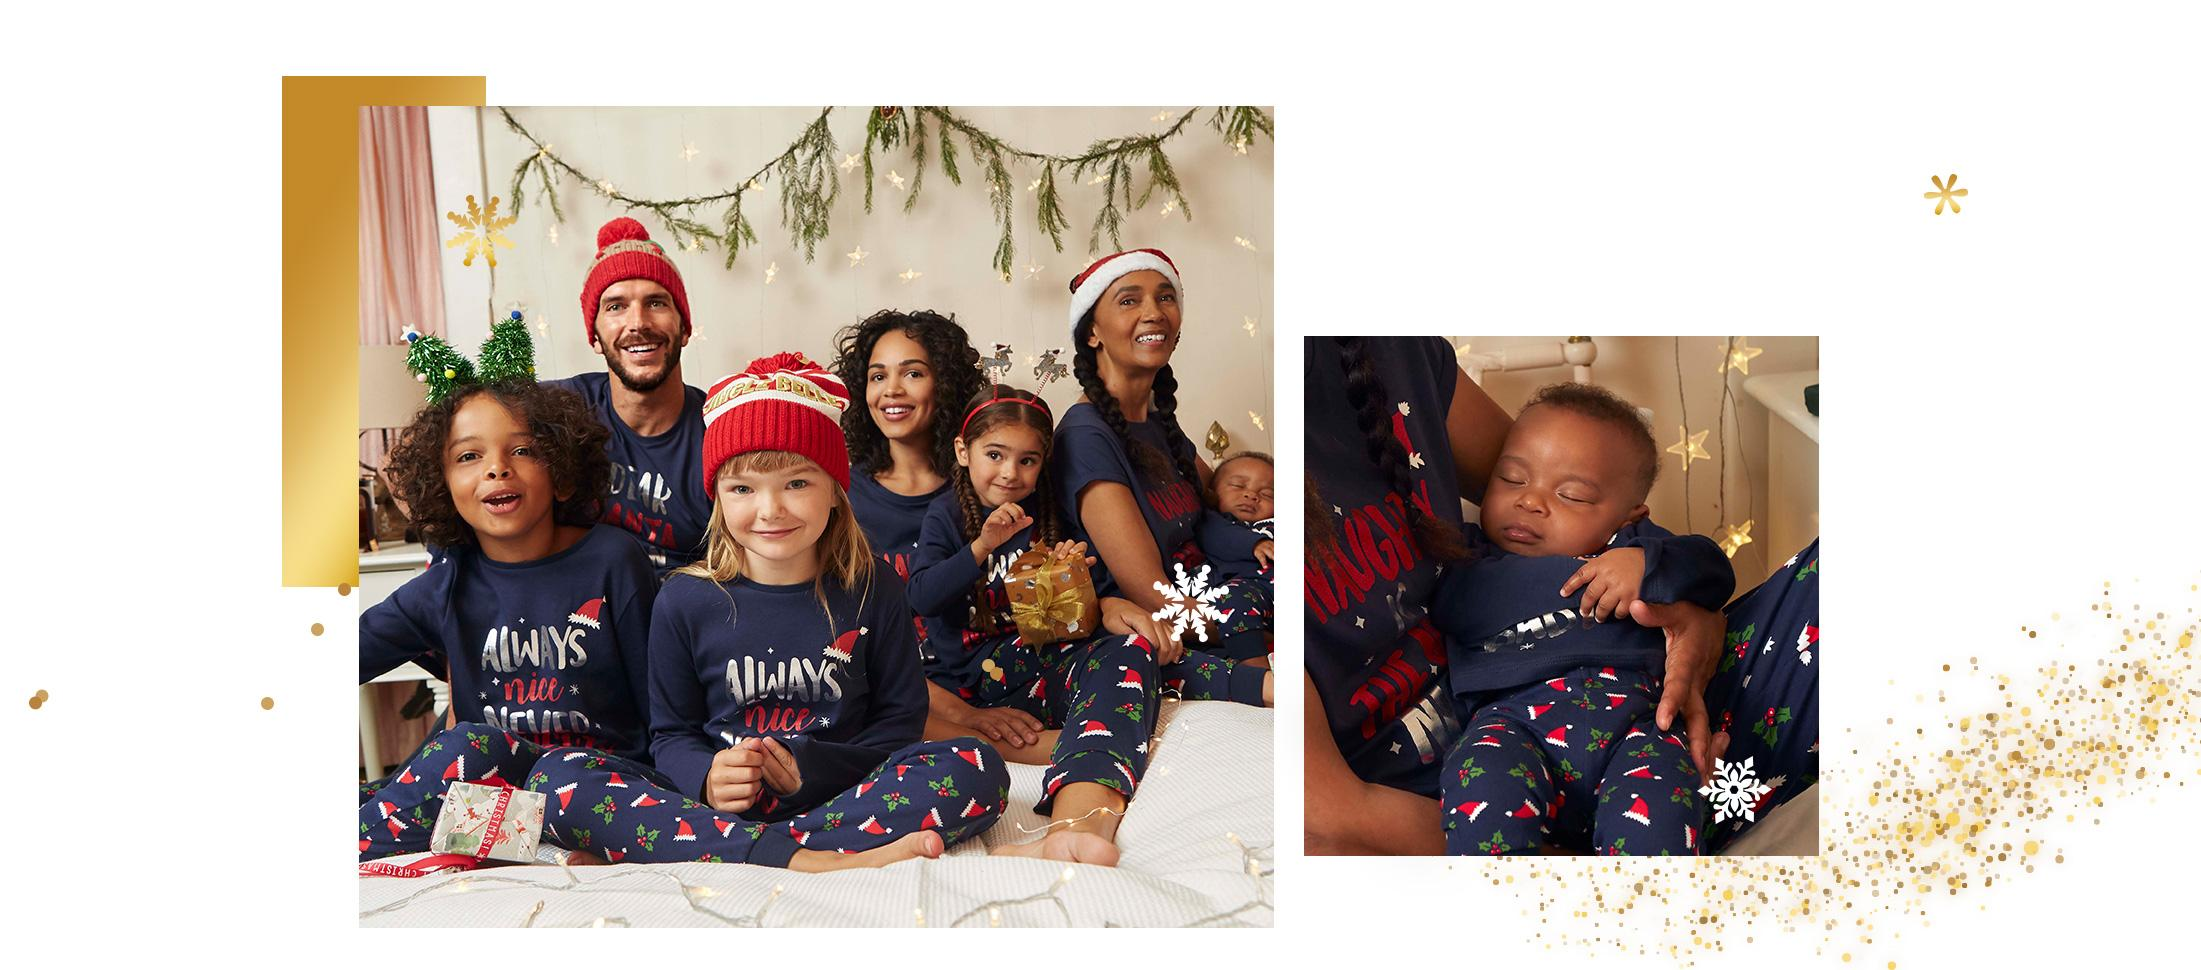 Count down the days to Christmas in comfort and style with matching PJs the whole family will love